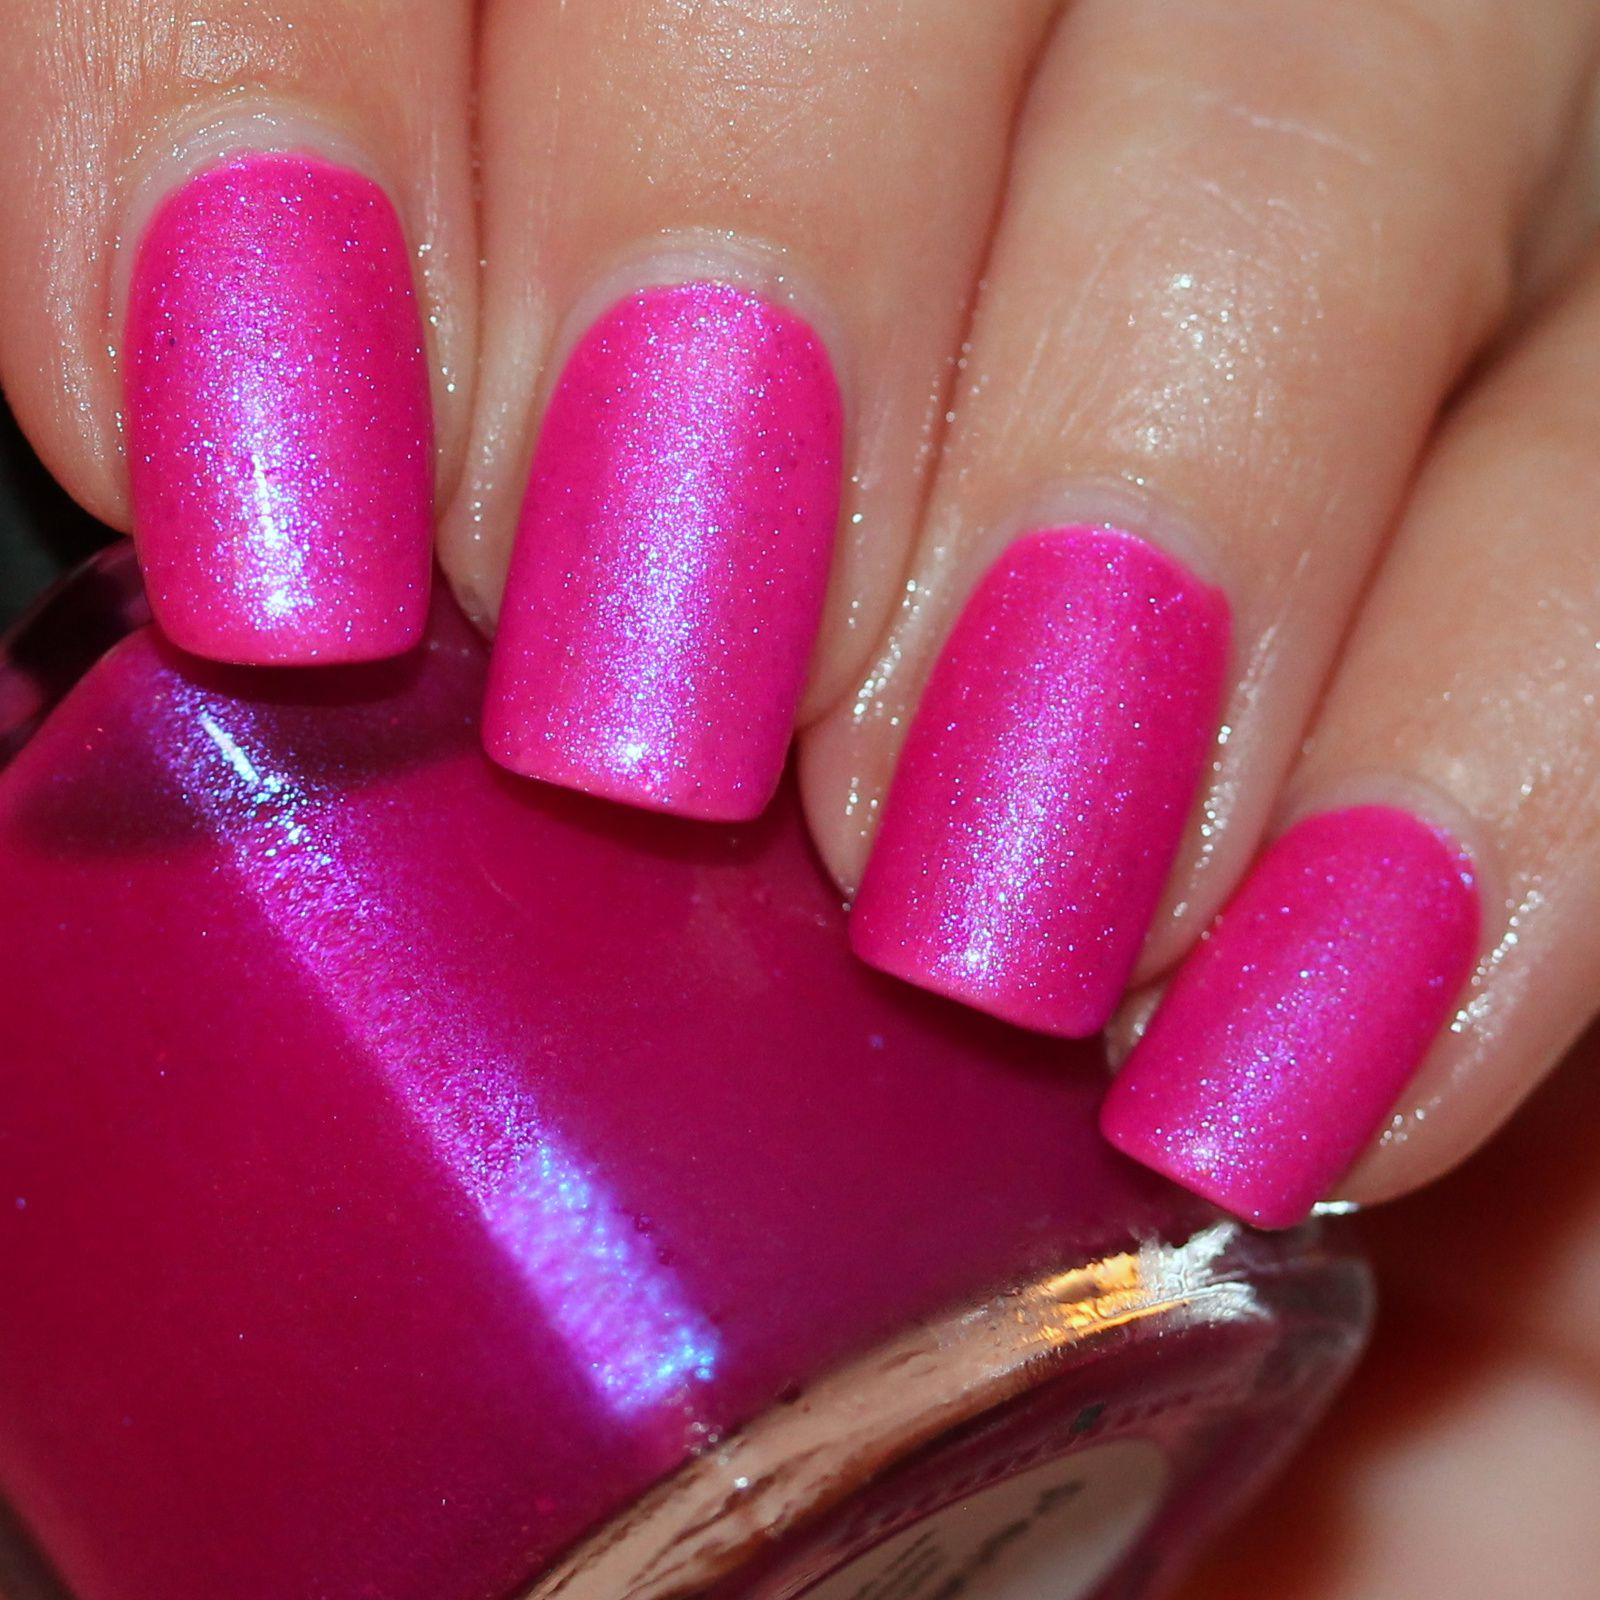 Sally Hansen Complete Care 4-in-1 Extra Moisturizing Nail Treatment / Lilypad Lacquer United People / Polished by KPT Penelope / HK Girl Top Coat